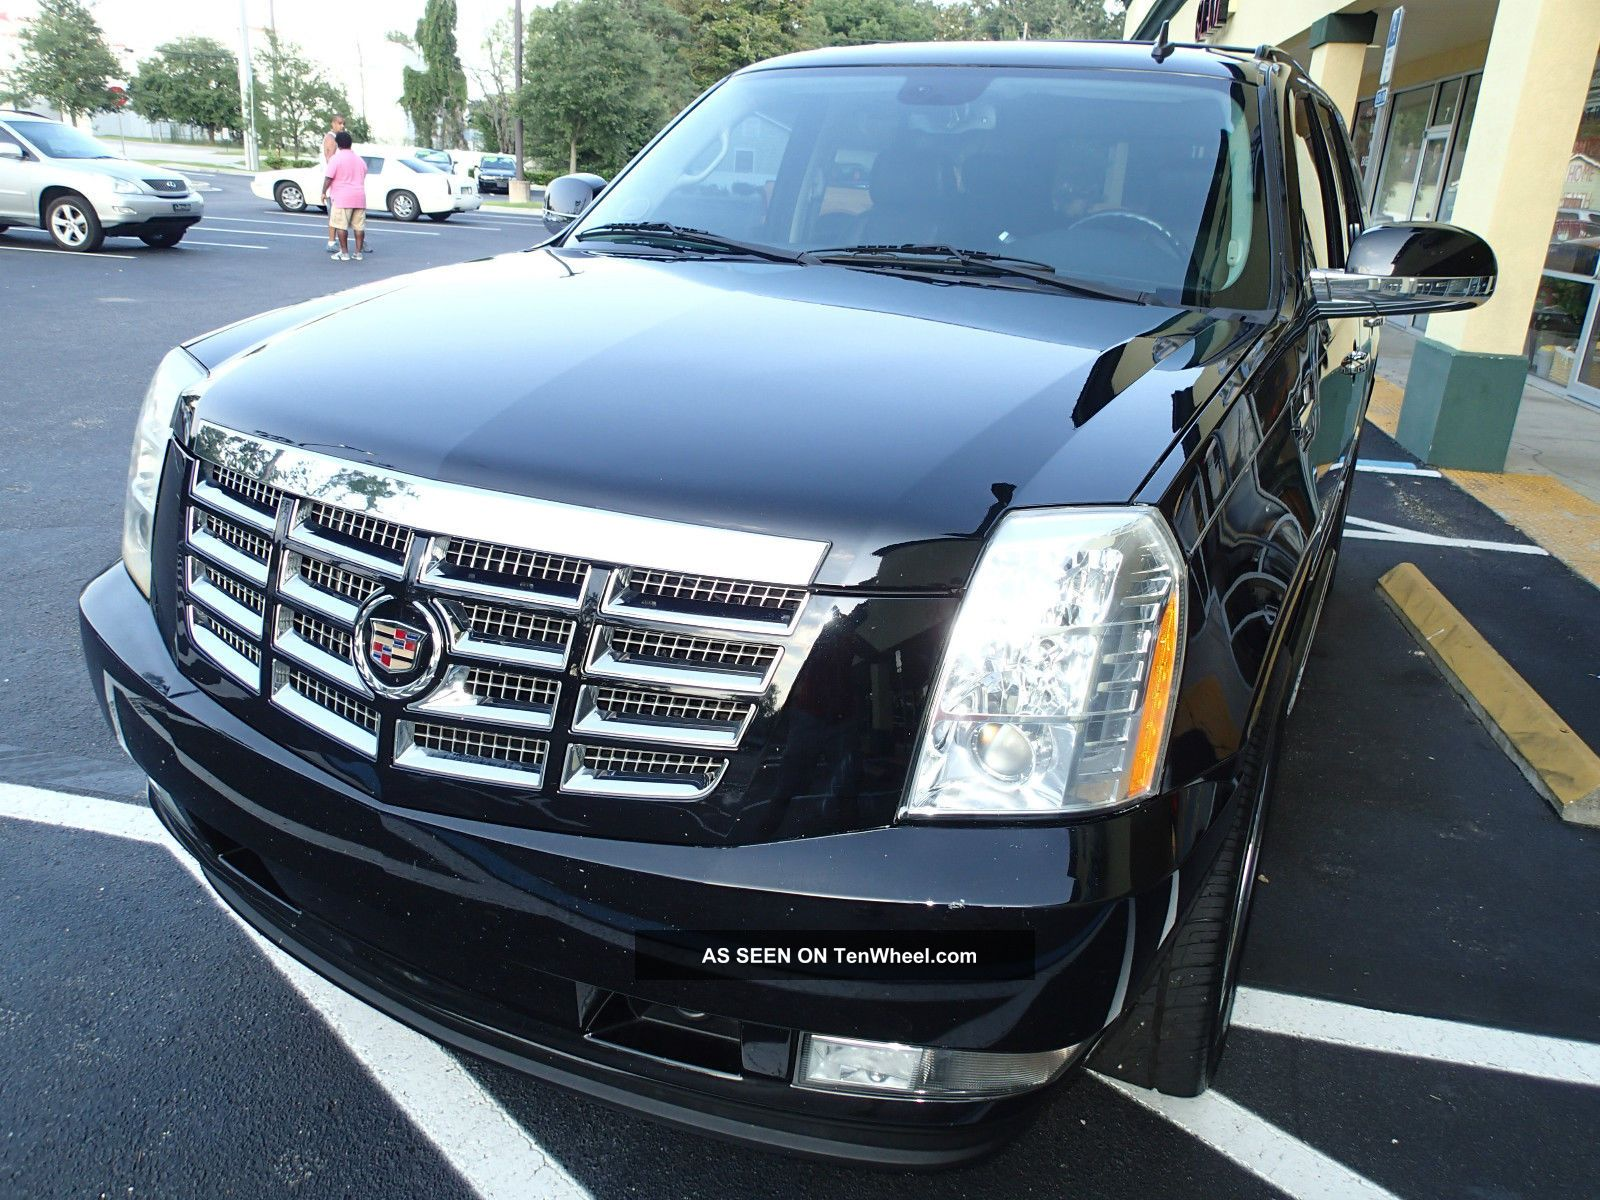 2008 Cadillac Escalade - We Have Two To Choose From Black And A Tan Escalade photo